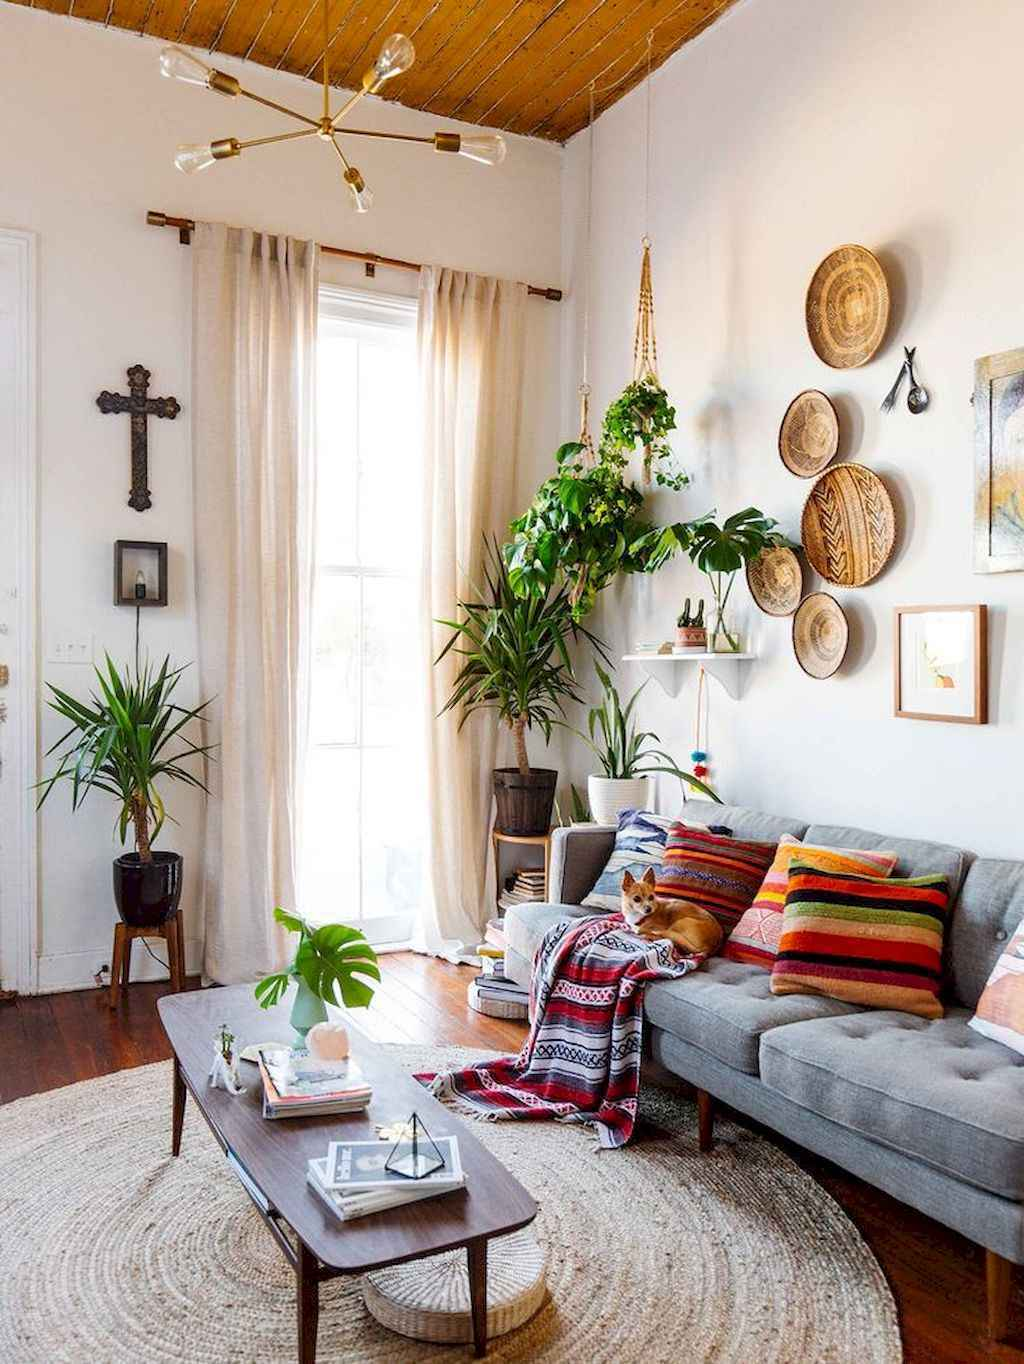 50 Diy First Apartment Ideas On A Budget With Boho Wall Decor (13)